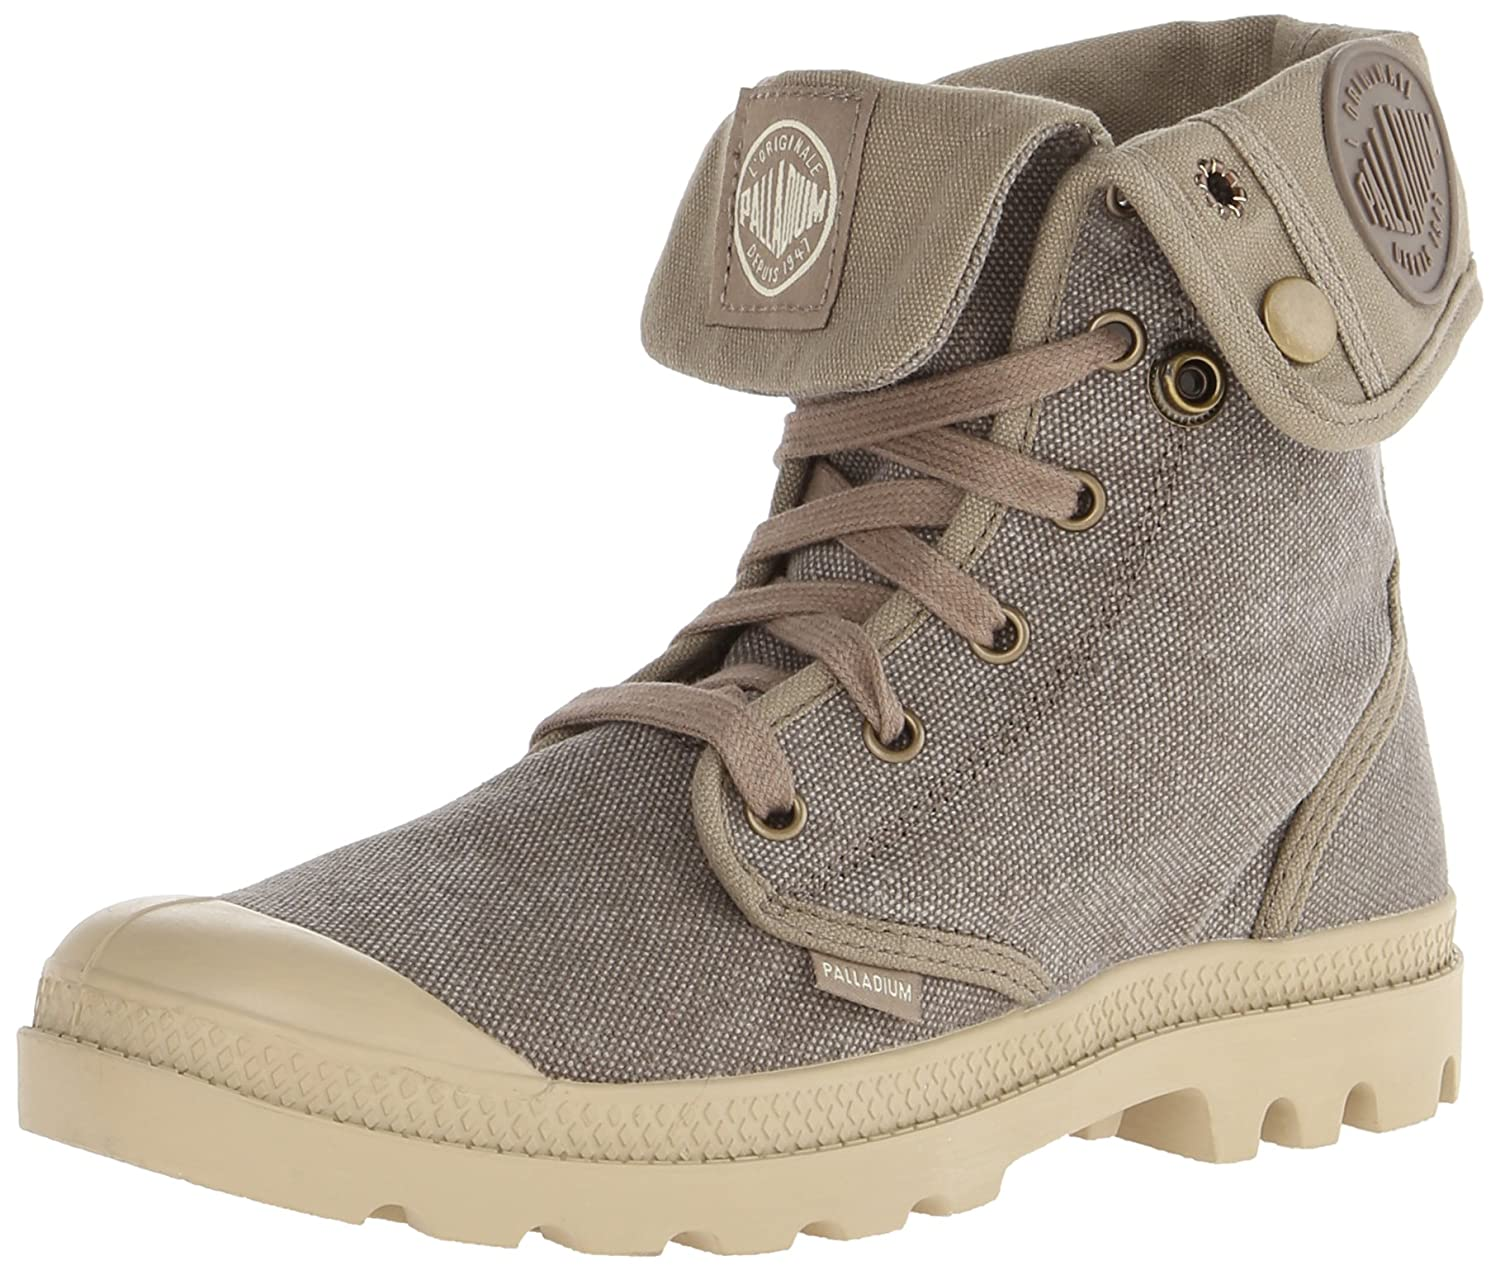 Palladium Women's Baggy Canvas B(M) Boot B00M283Y1K 8 B(M) Canvas US|Boue/Putty 2dd9a7